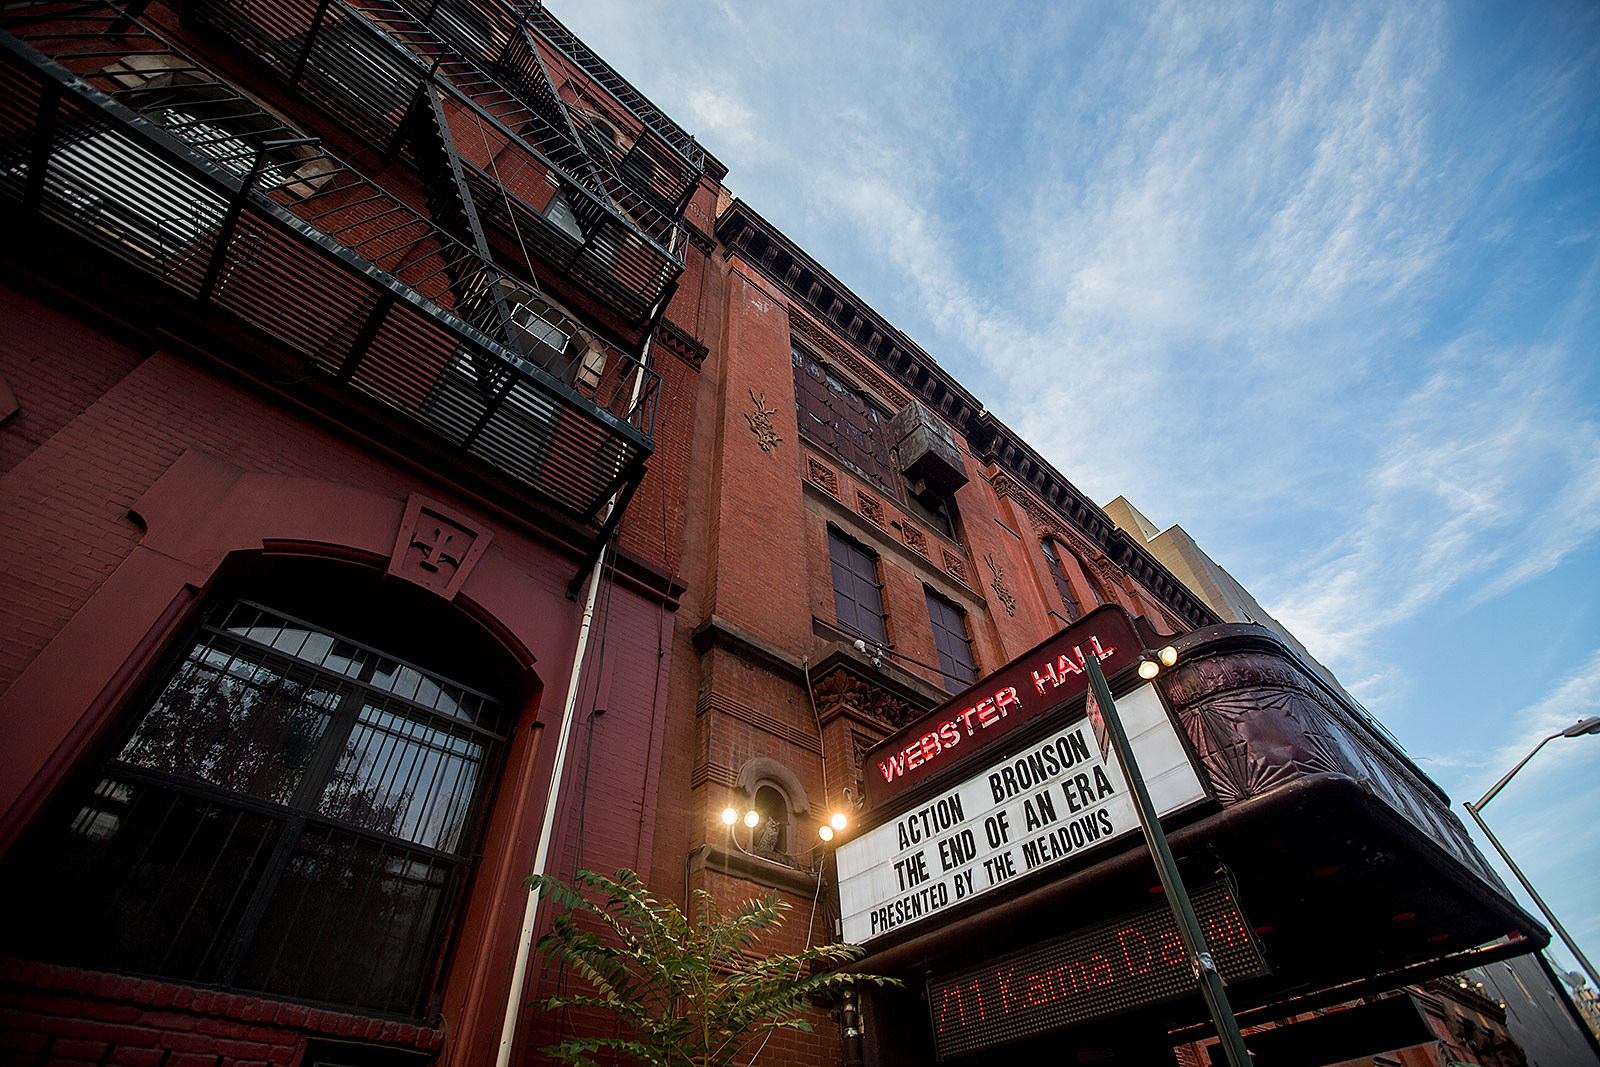 The End of an Era at Webster Hall